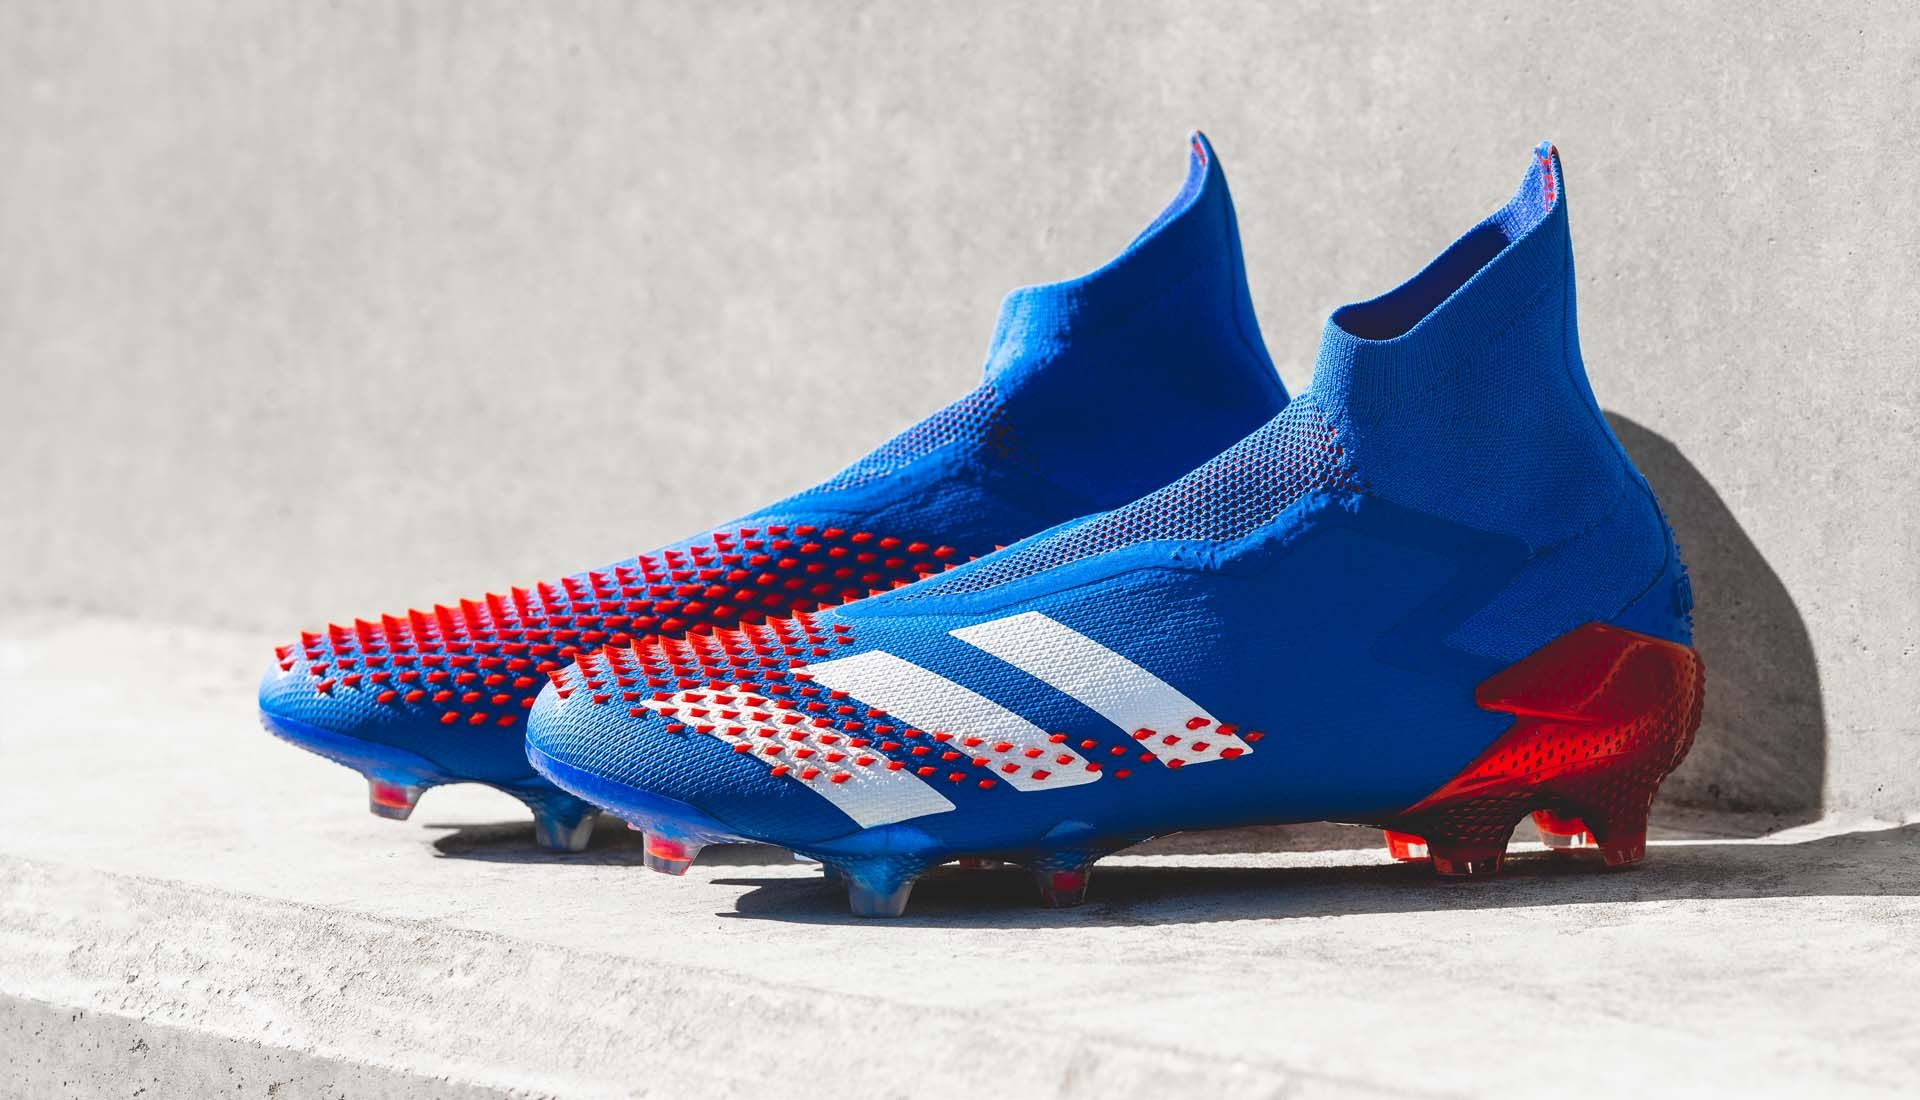 Adidas Launch The Predator 20 Tormentor Colourway Soccerbible In 2020 Football Boots Soccer Boots Adidas